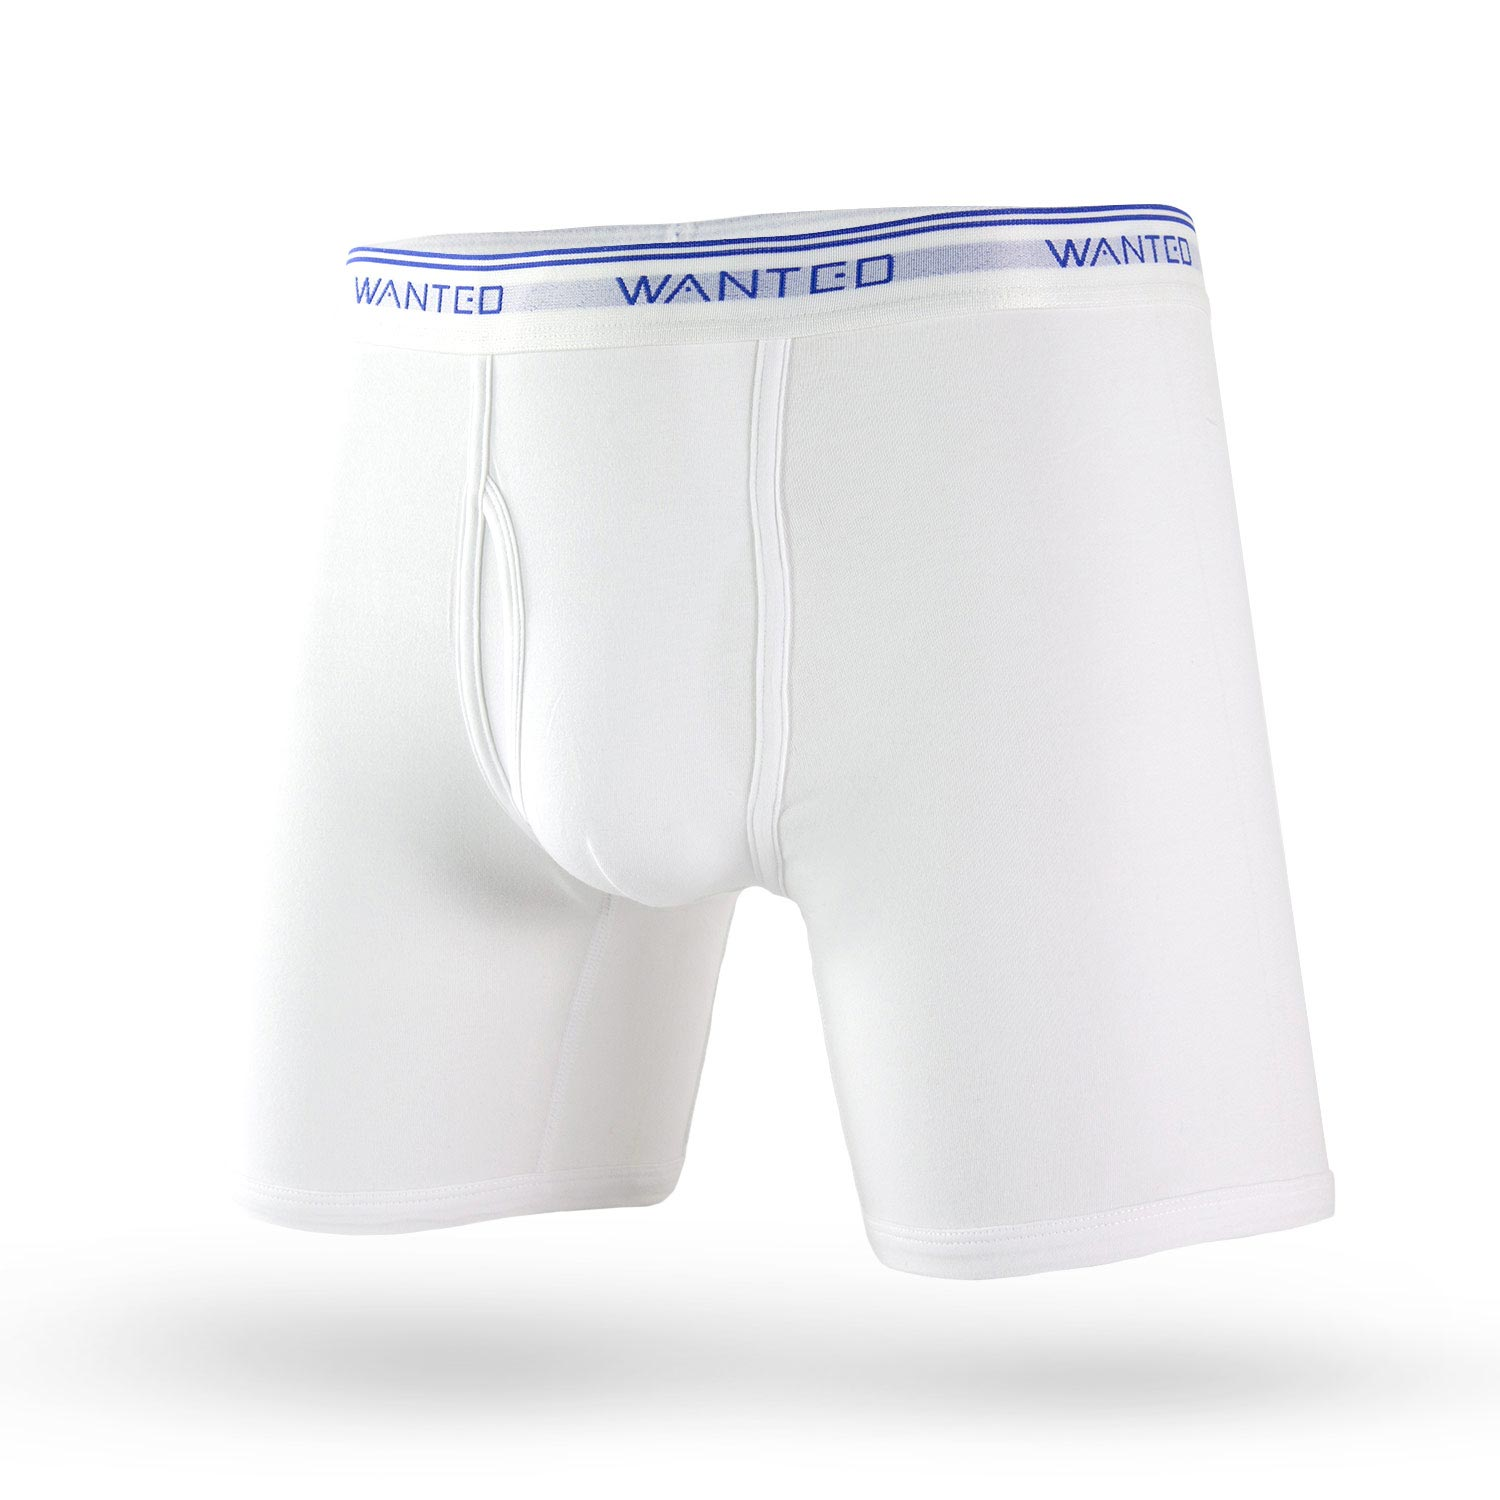 Boxer Little Wanted White - Tailles [24-36]